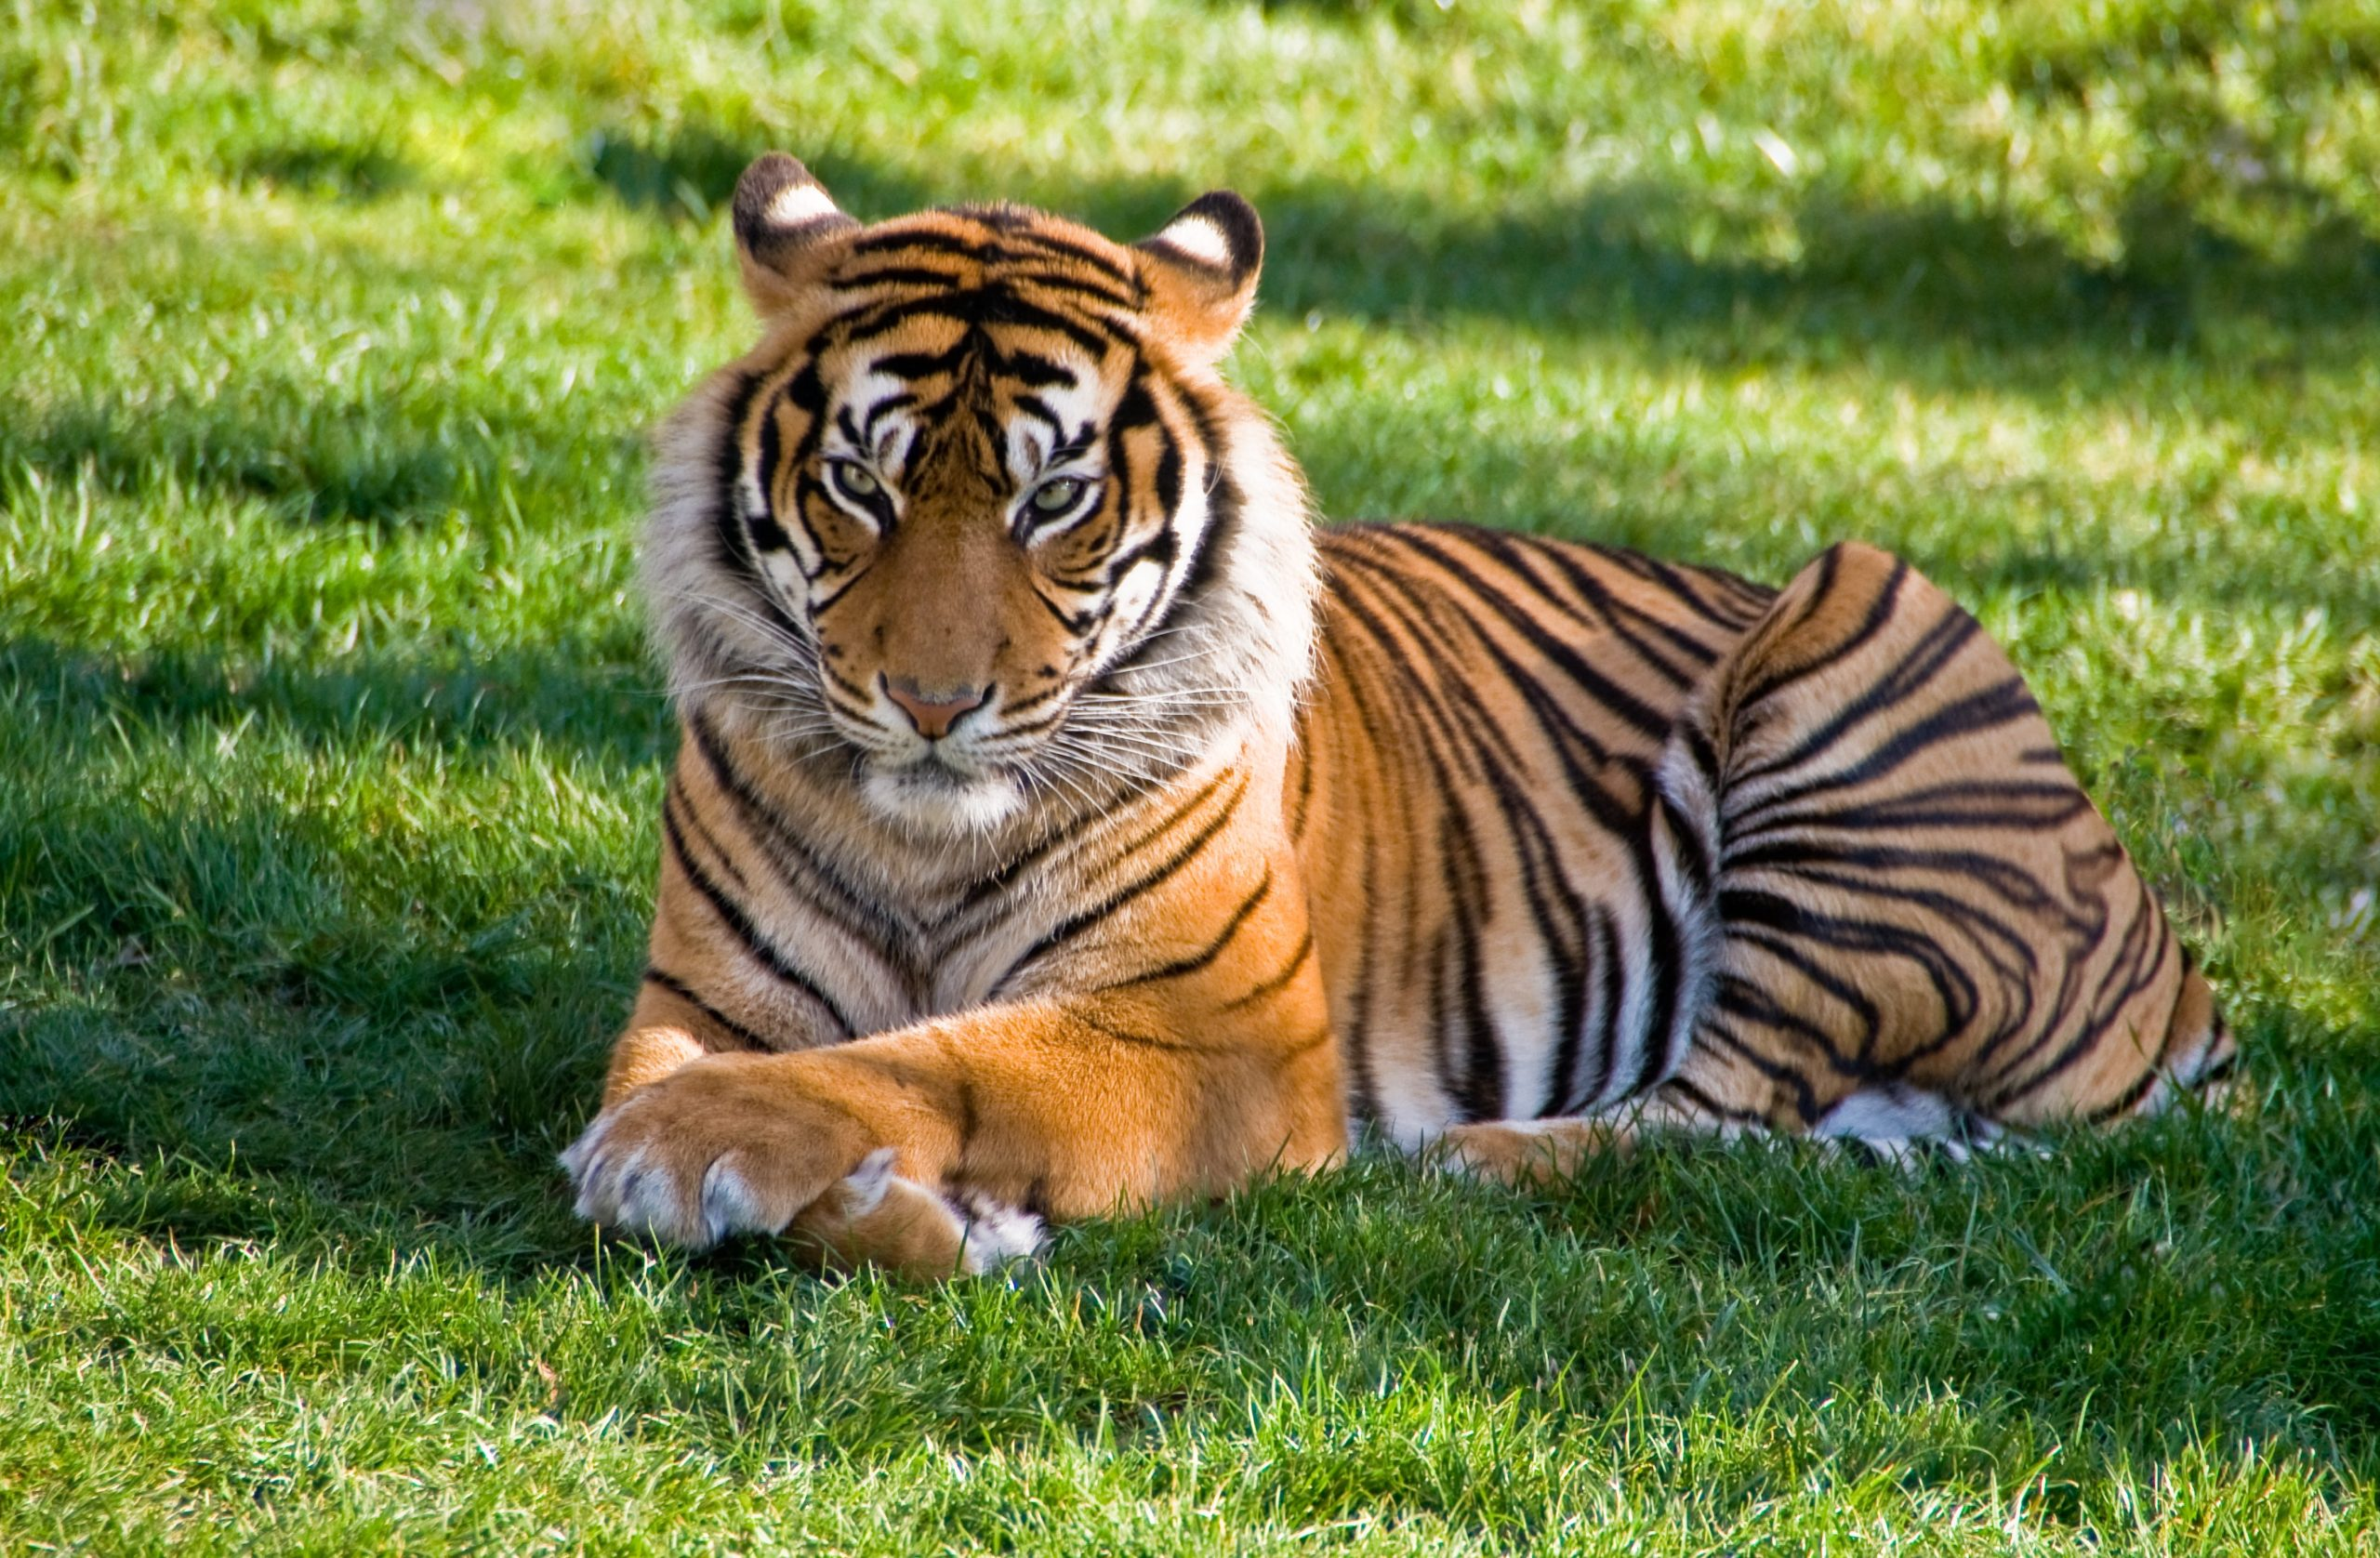 Tiger 'Nadia' Tests positive For COVID-19 at NYC's Bronx Zoo